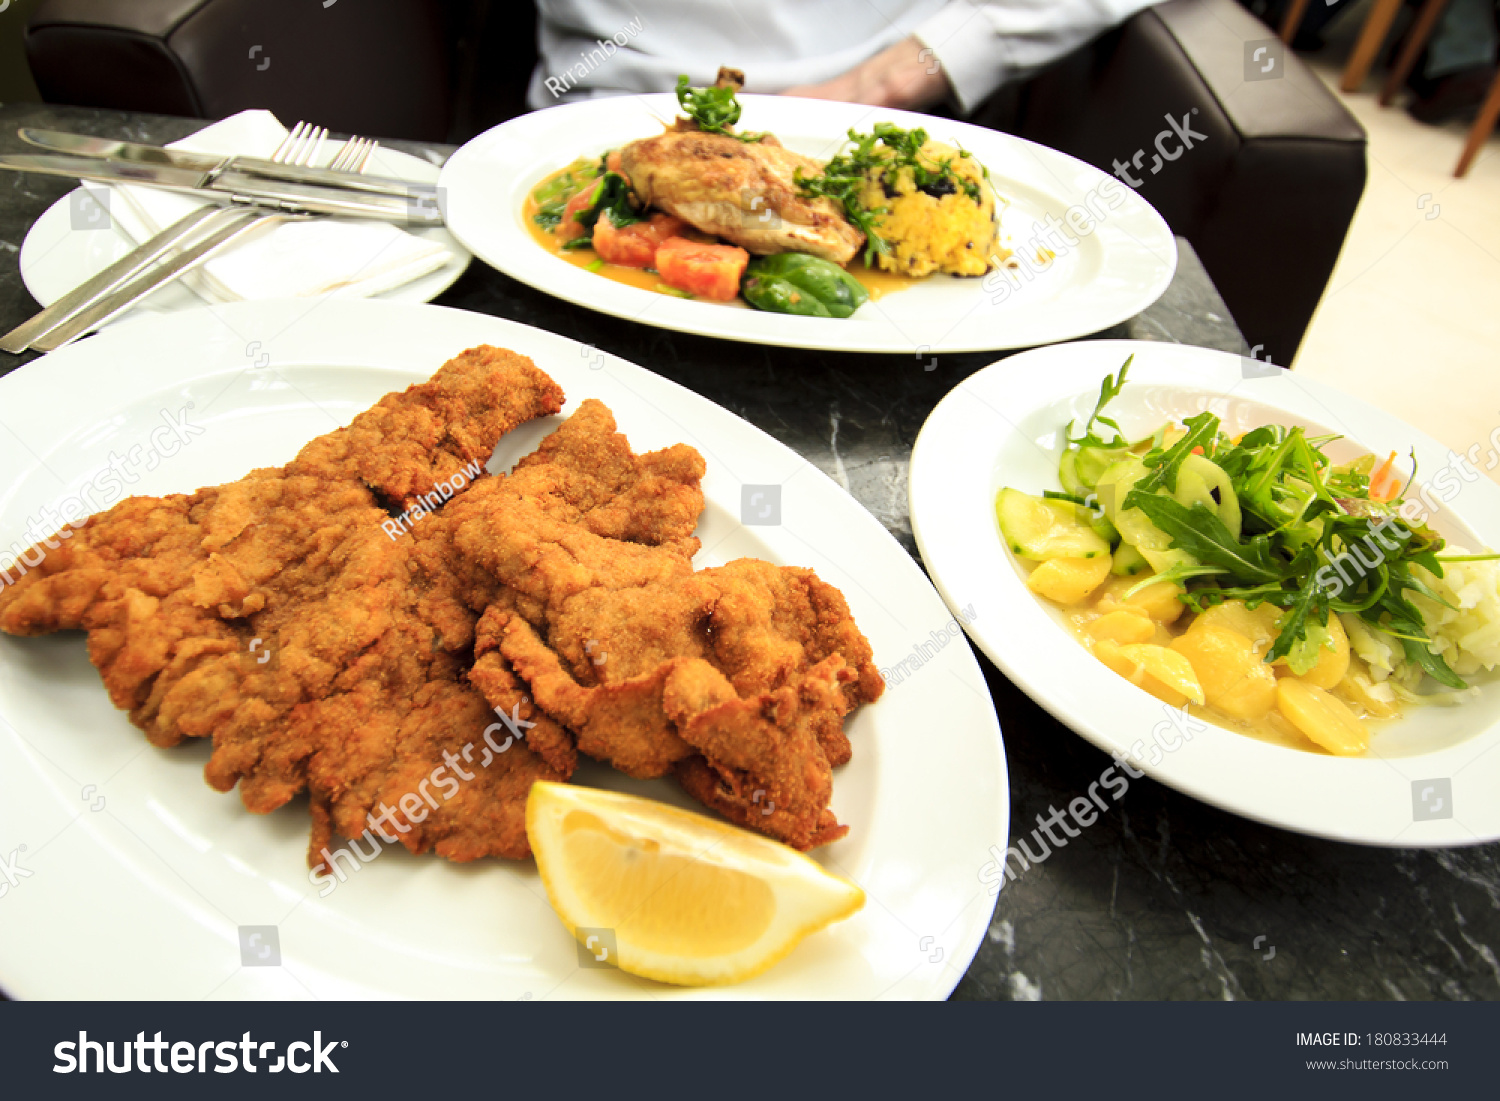 Schnitzel Restaurant Viennese Schnitzel Potato Salad Vienna Restaurant Stock Photo